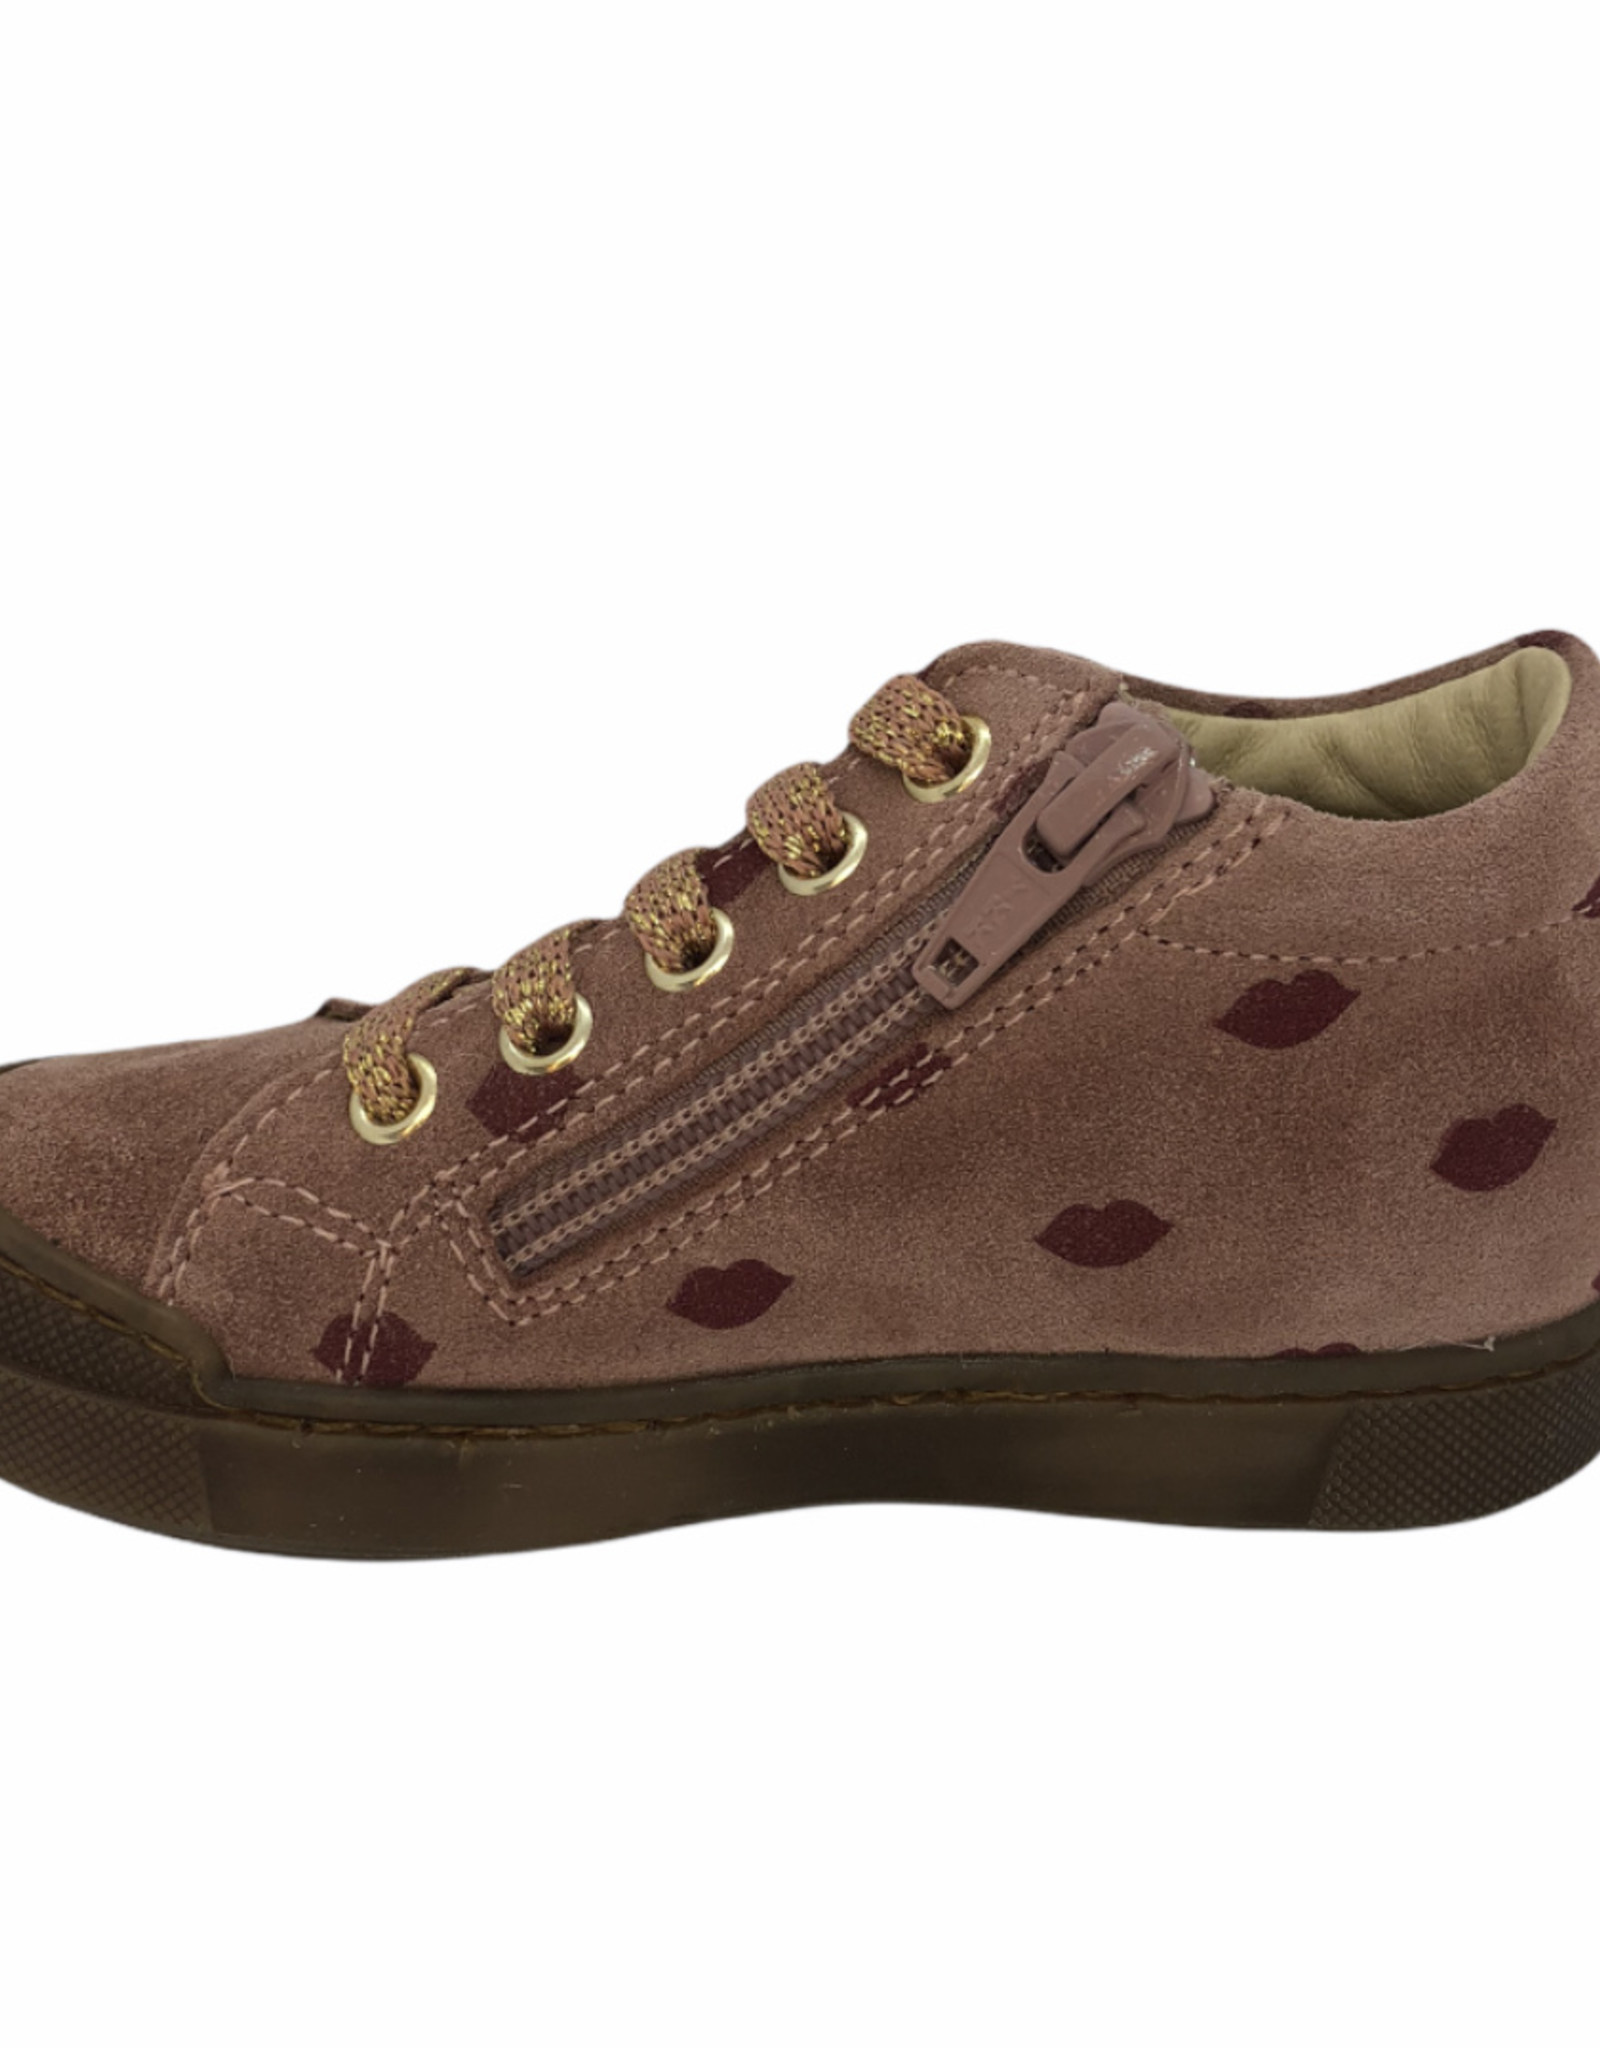 Falcotto snopes suede kiss rose